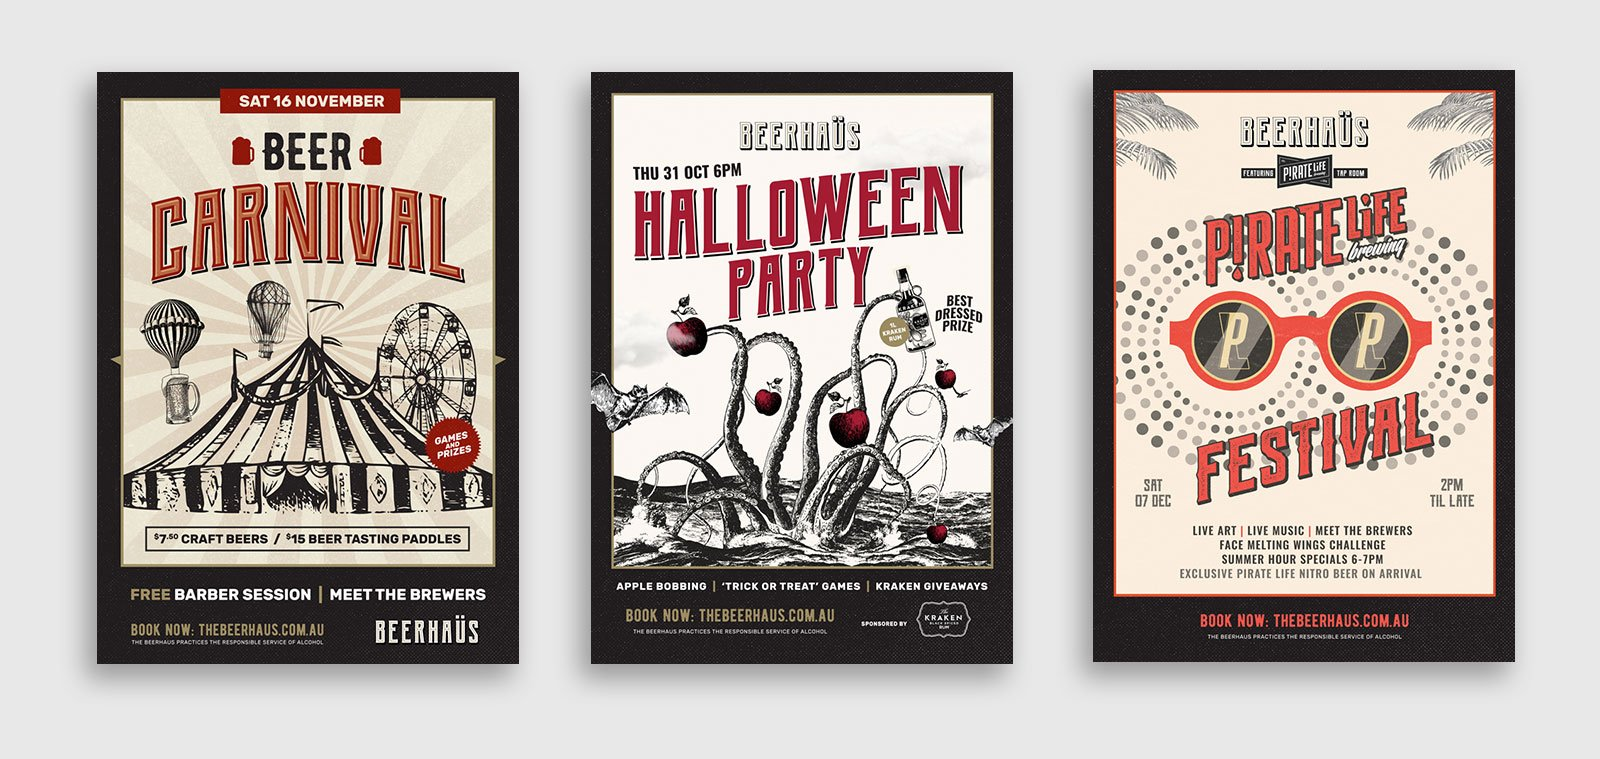 Event poster designs for Beerhaus